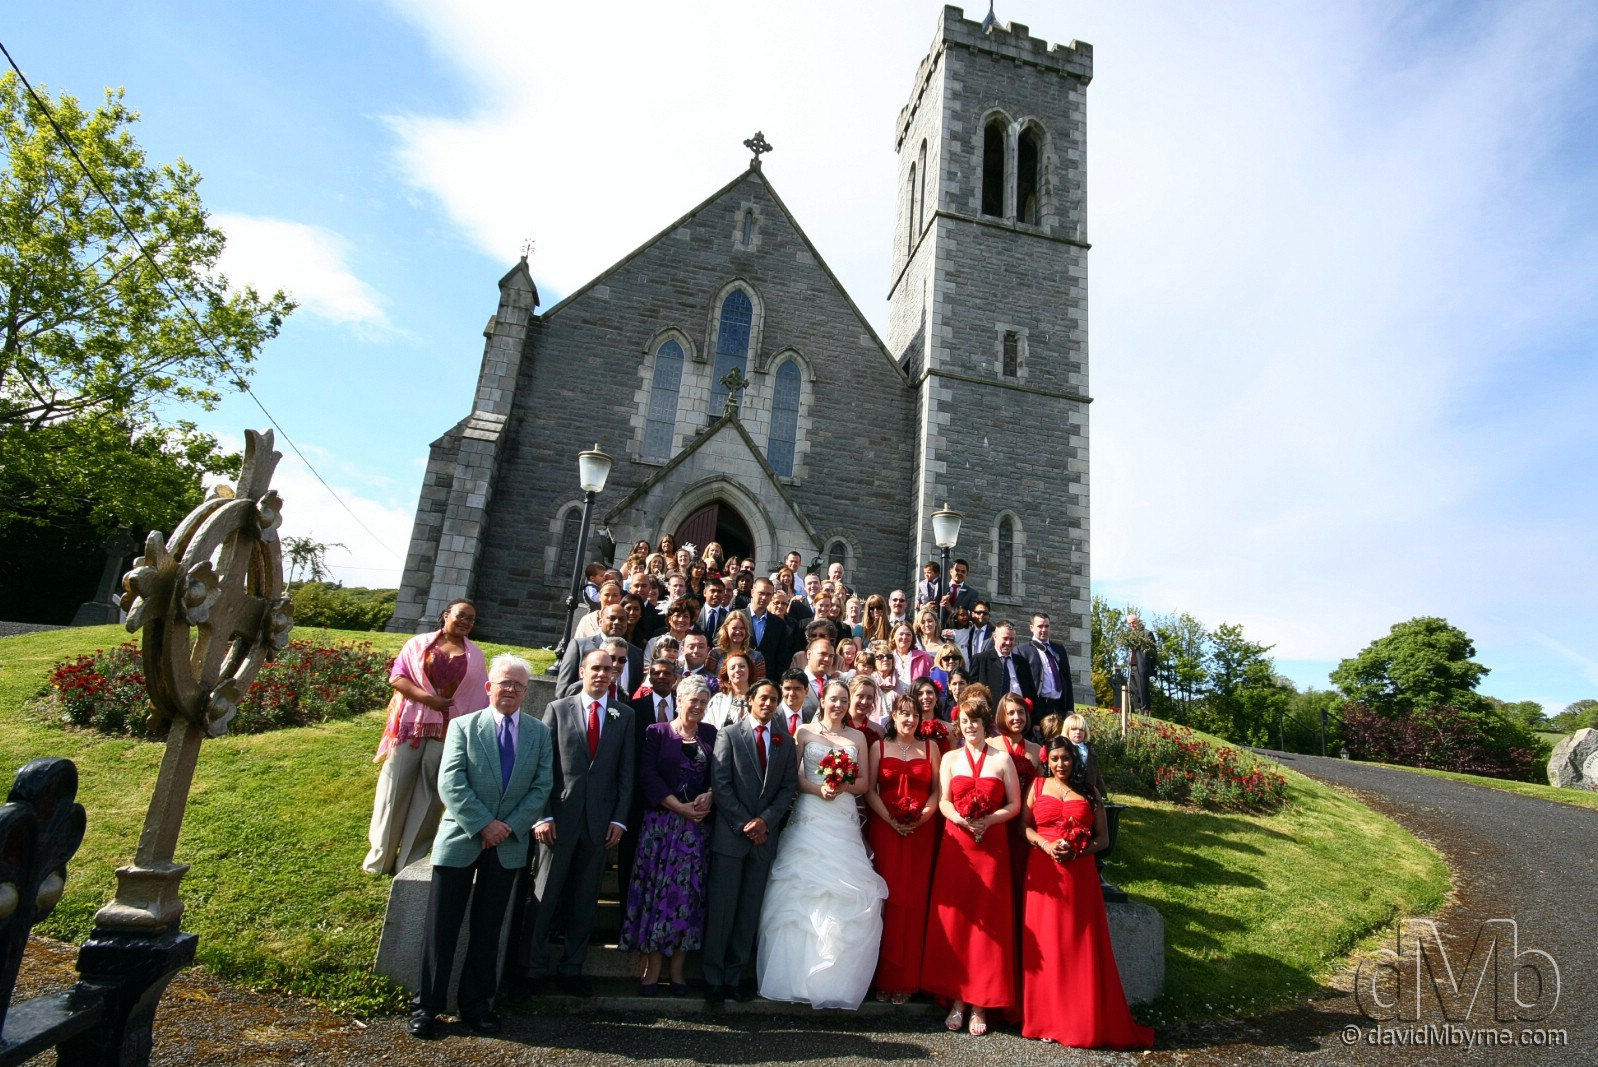 The congregation, minus yours truly, of Clare & Michael's wedding at the Church of the Sacred Heart, Aughrim, Co. Wicklow, Ireland. May 14th, 2011 (10mm, 1/200sec, f10.0, iso200)